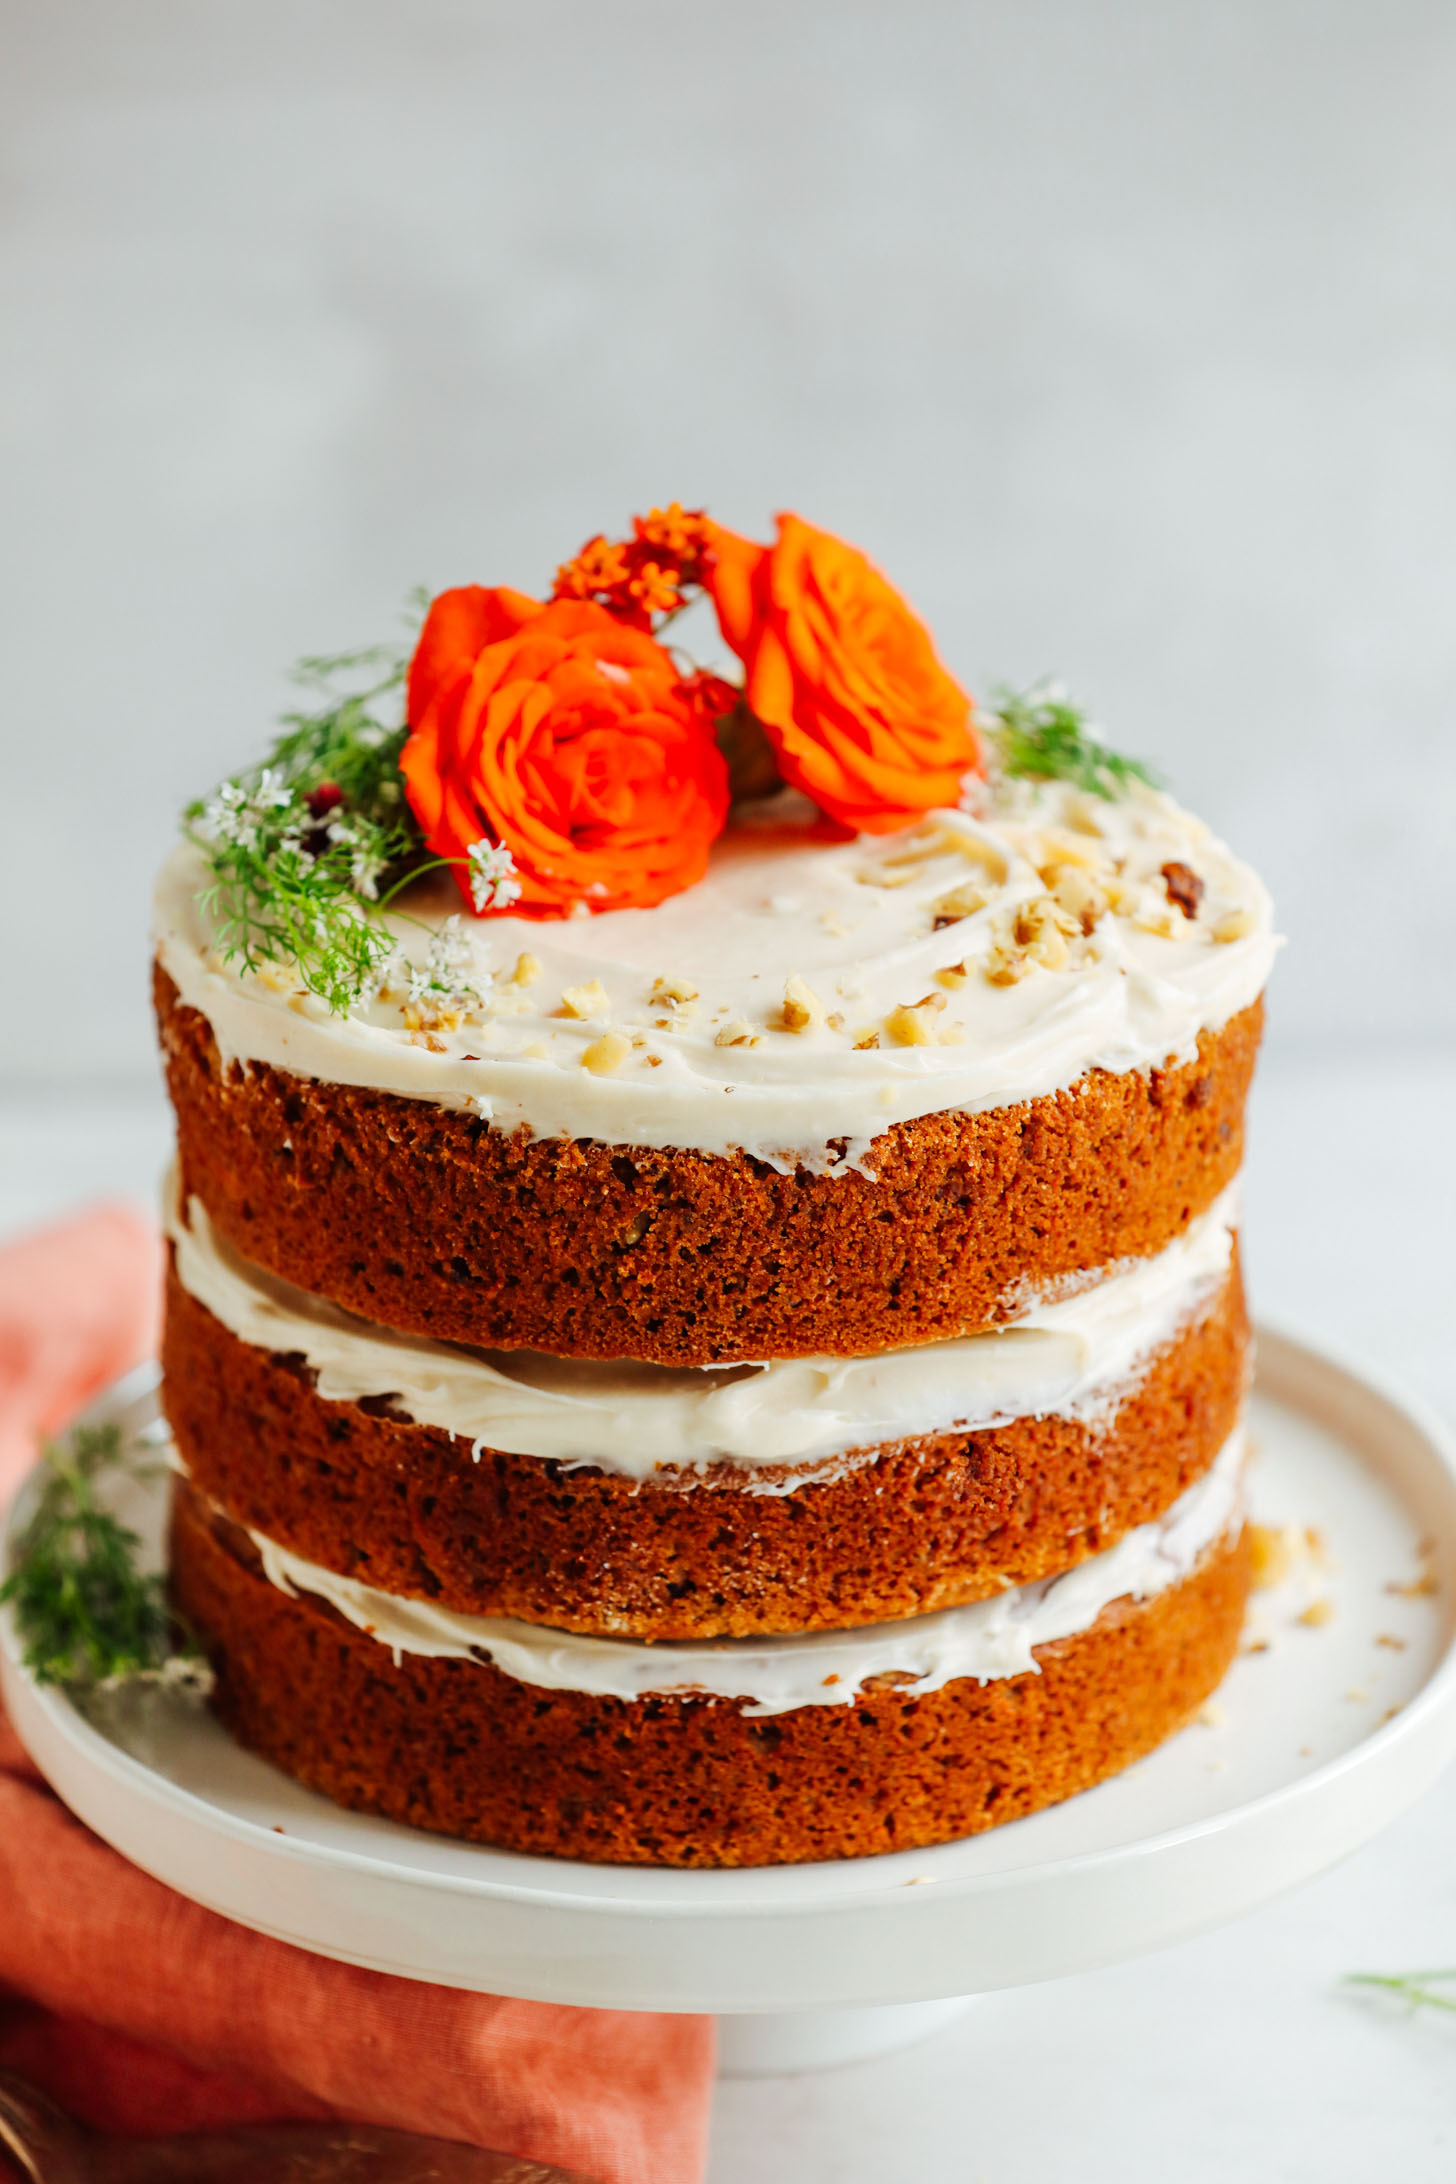 43173a412ac7 Three-layer Vegan Gluten-Free Carrot Cake decorated with flowers and  chopped nuts